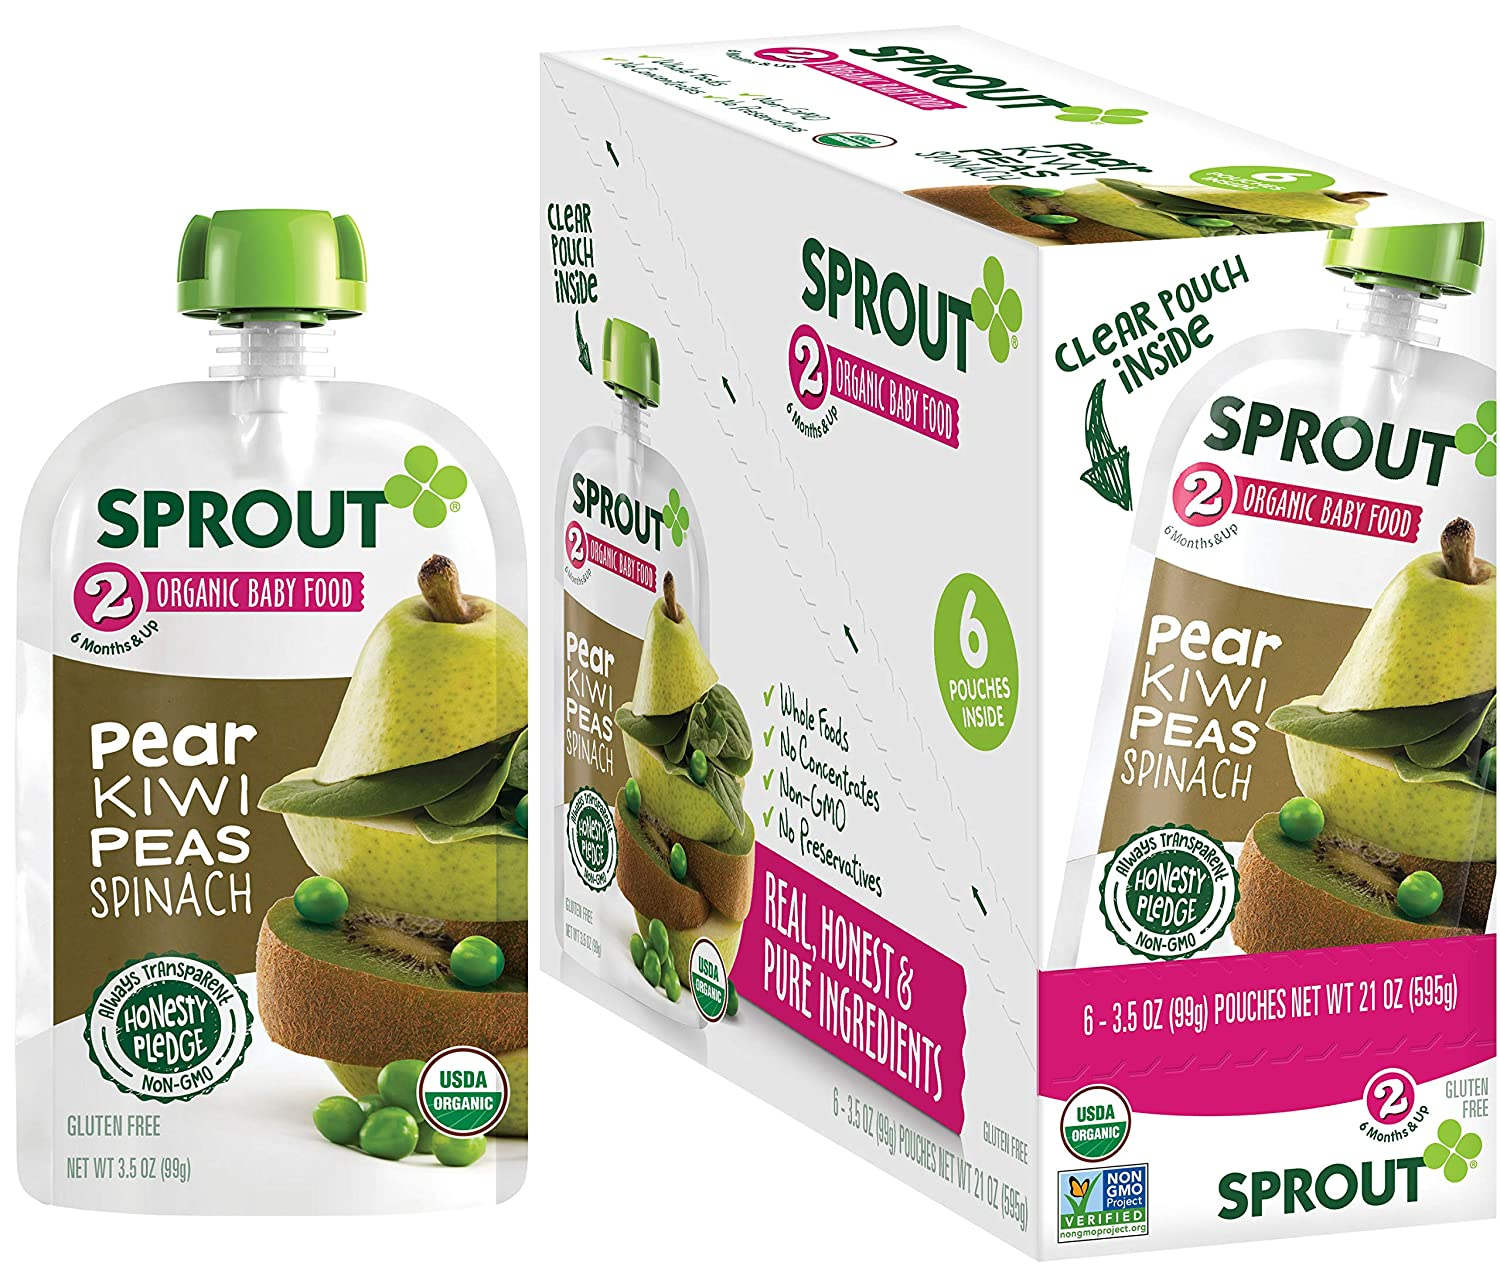 Sprout Organic Baby Food, Stage 2 Pouches, Fruit & Veggie Blend, Pear Kiwi Peas & Spinach, 3.5 Oz Purees (Pack of 12)